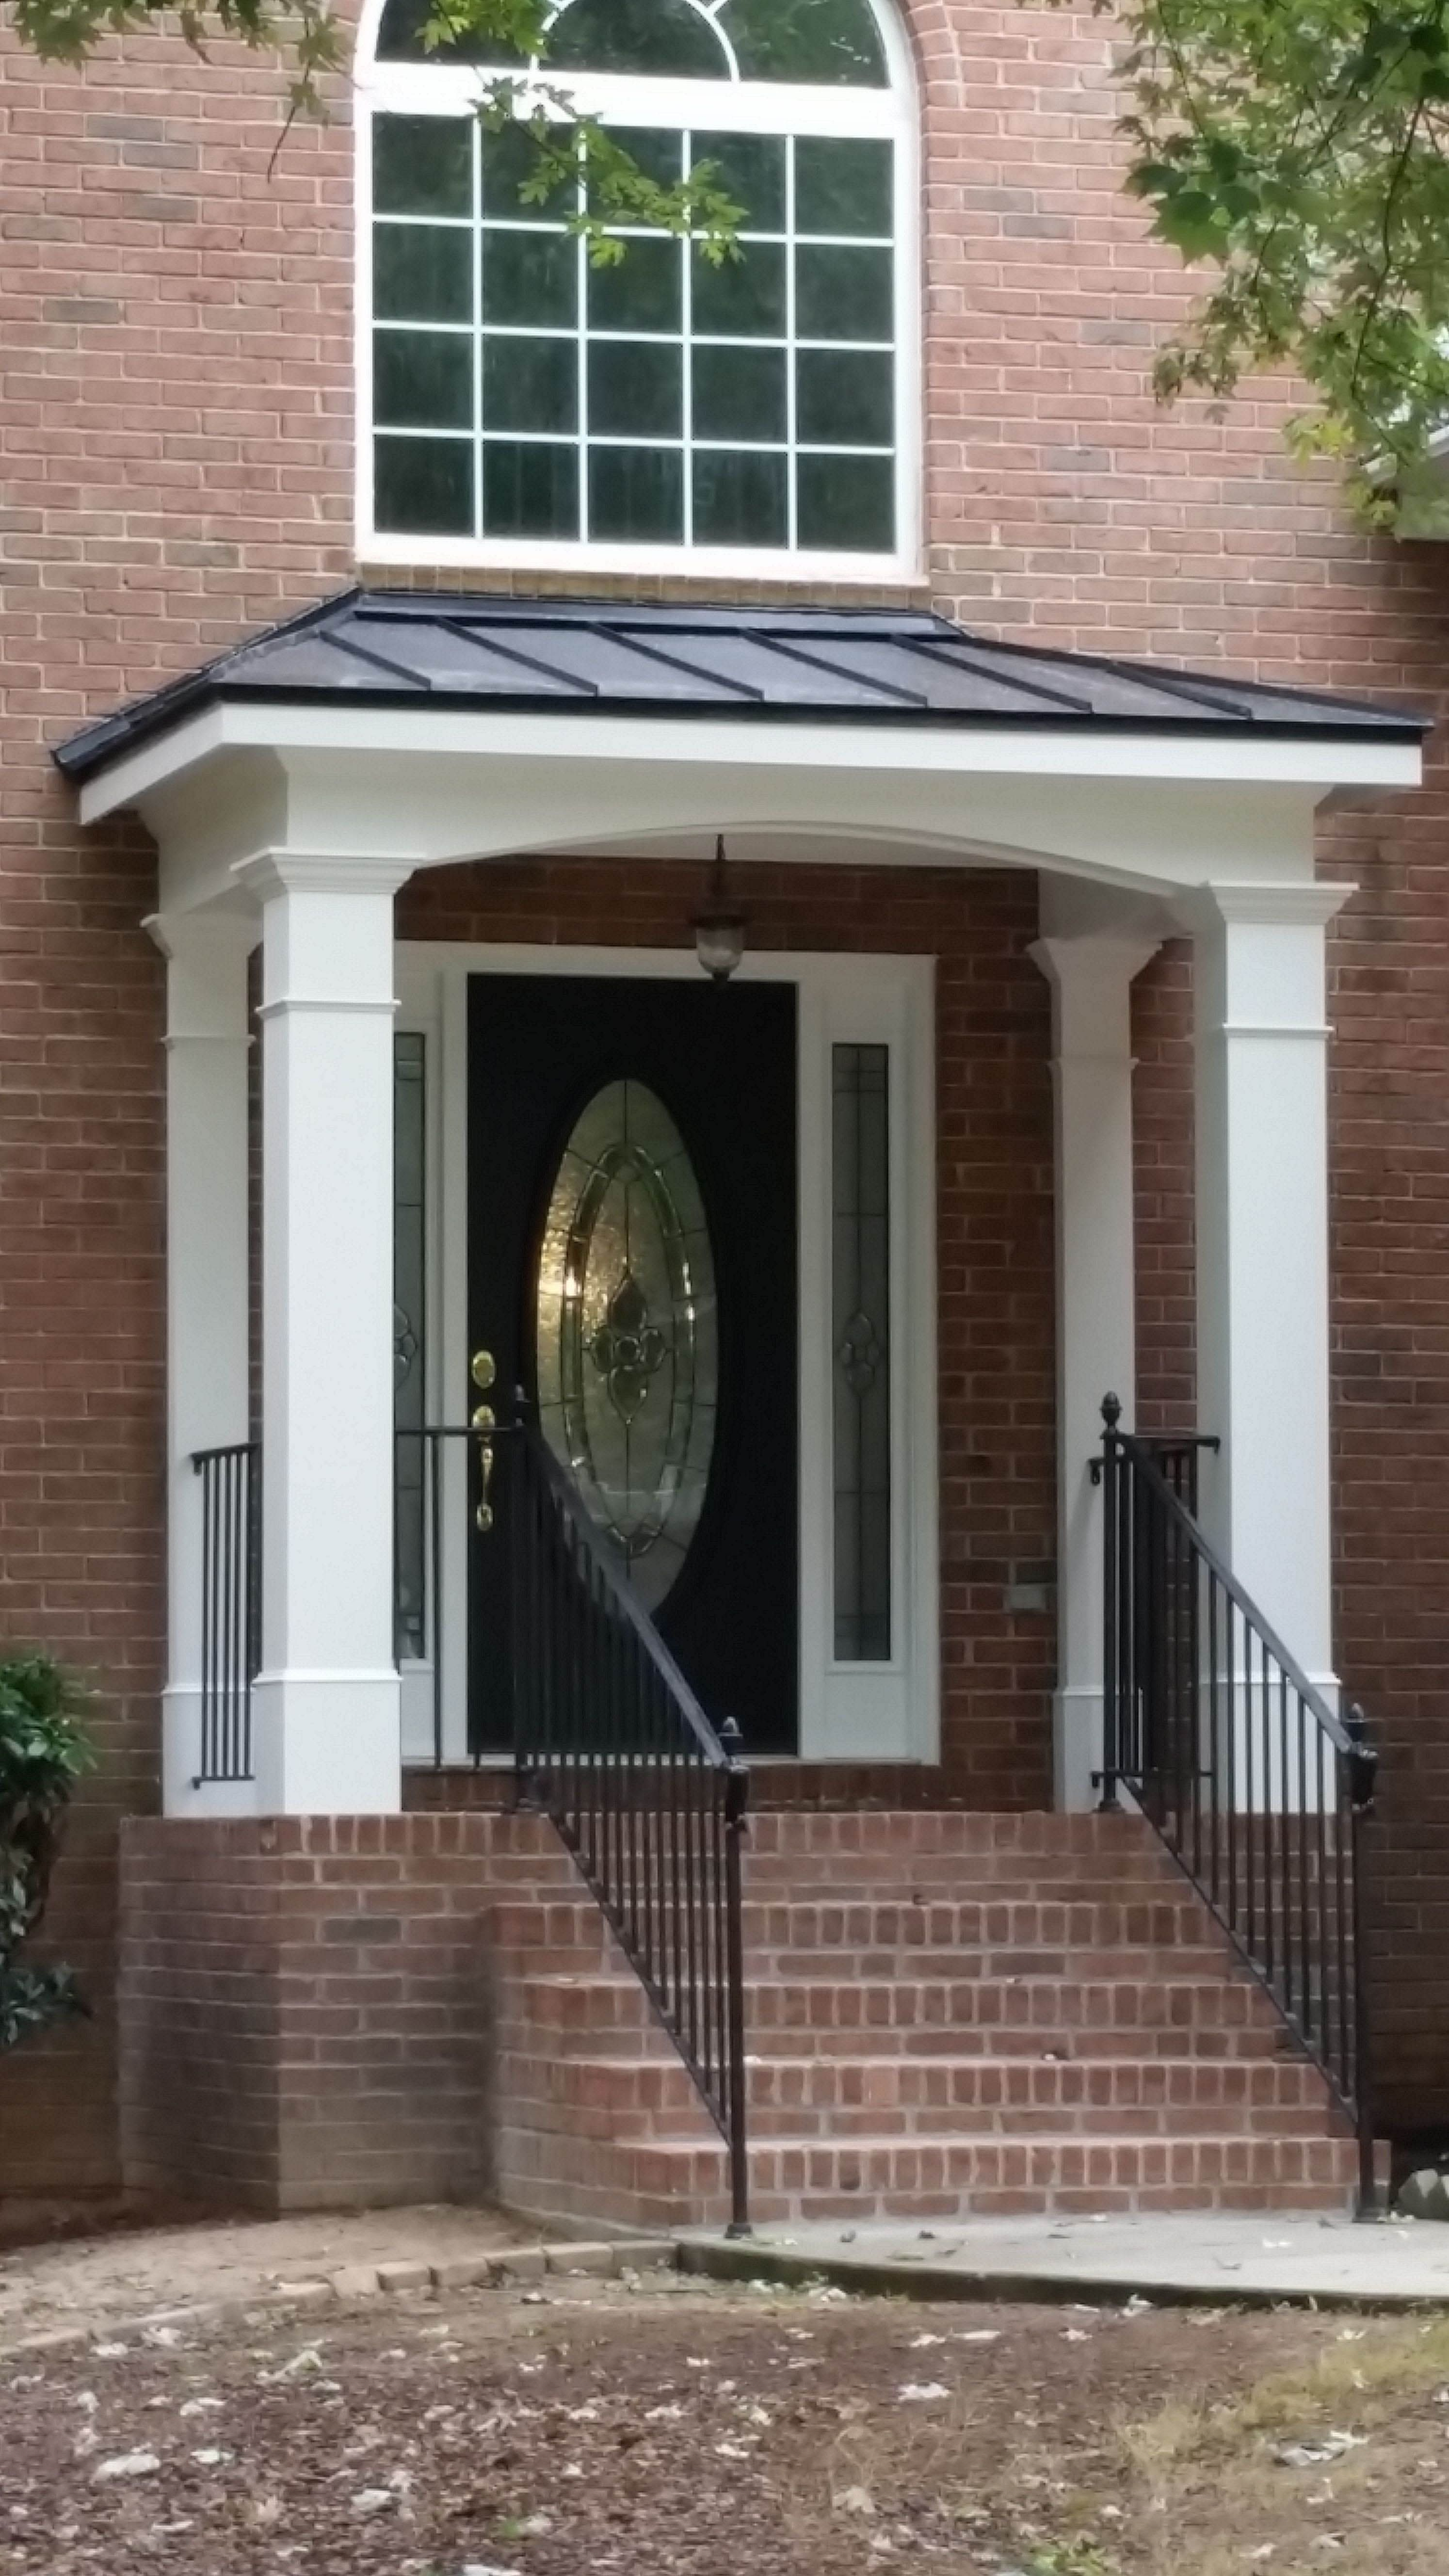 Porch Roof Designs And Styles Small Front Porches Designs House Front Porch Front Porch Design